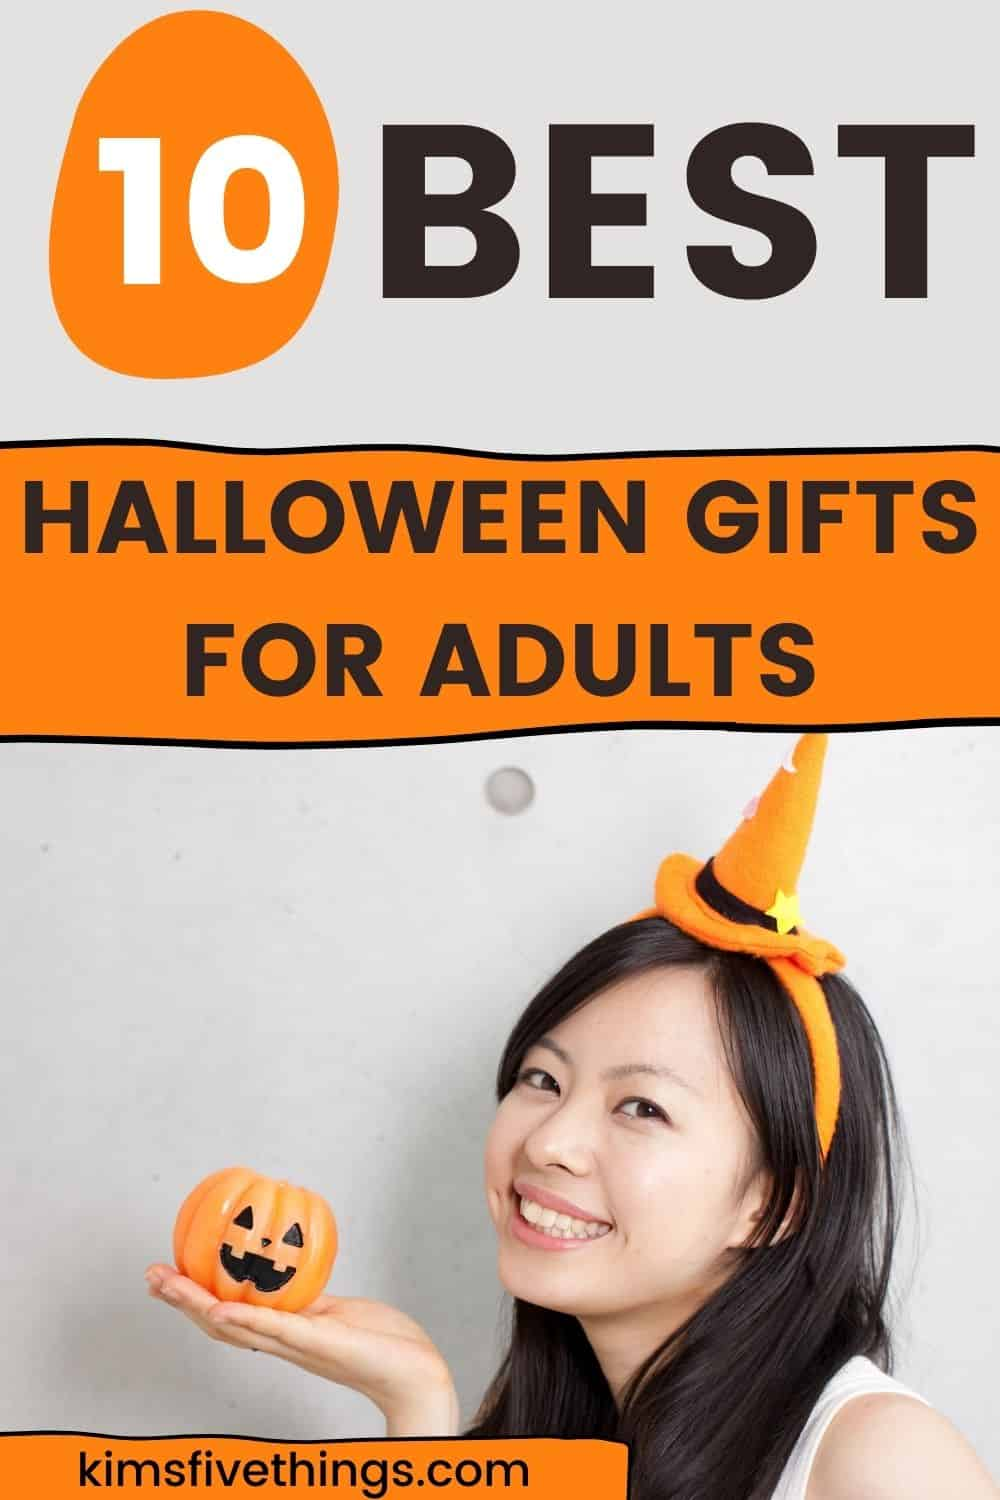 10 Best Halloween Gift Ideas for Adults | Kims Home Ideas